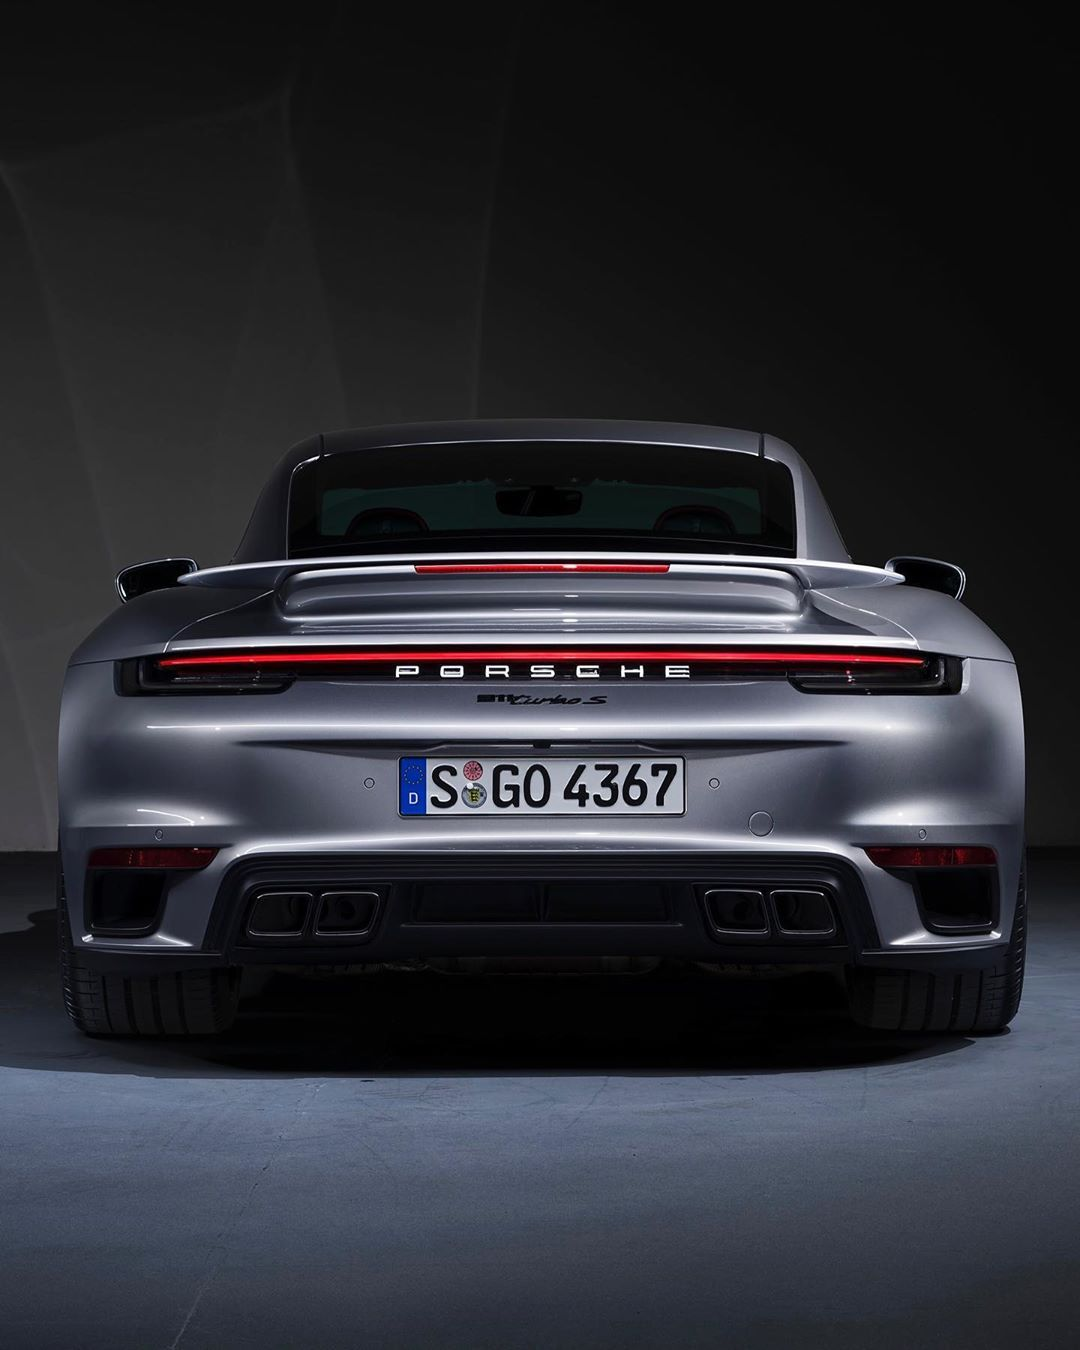 Crazy About Porsche On Instagram Say Hello To The New Porsche Turbo S Porsche 992 Turbo Porscheoftheday Por In 2020 Porsche Turbo S New Porsche Turbo S